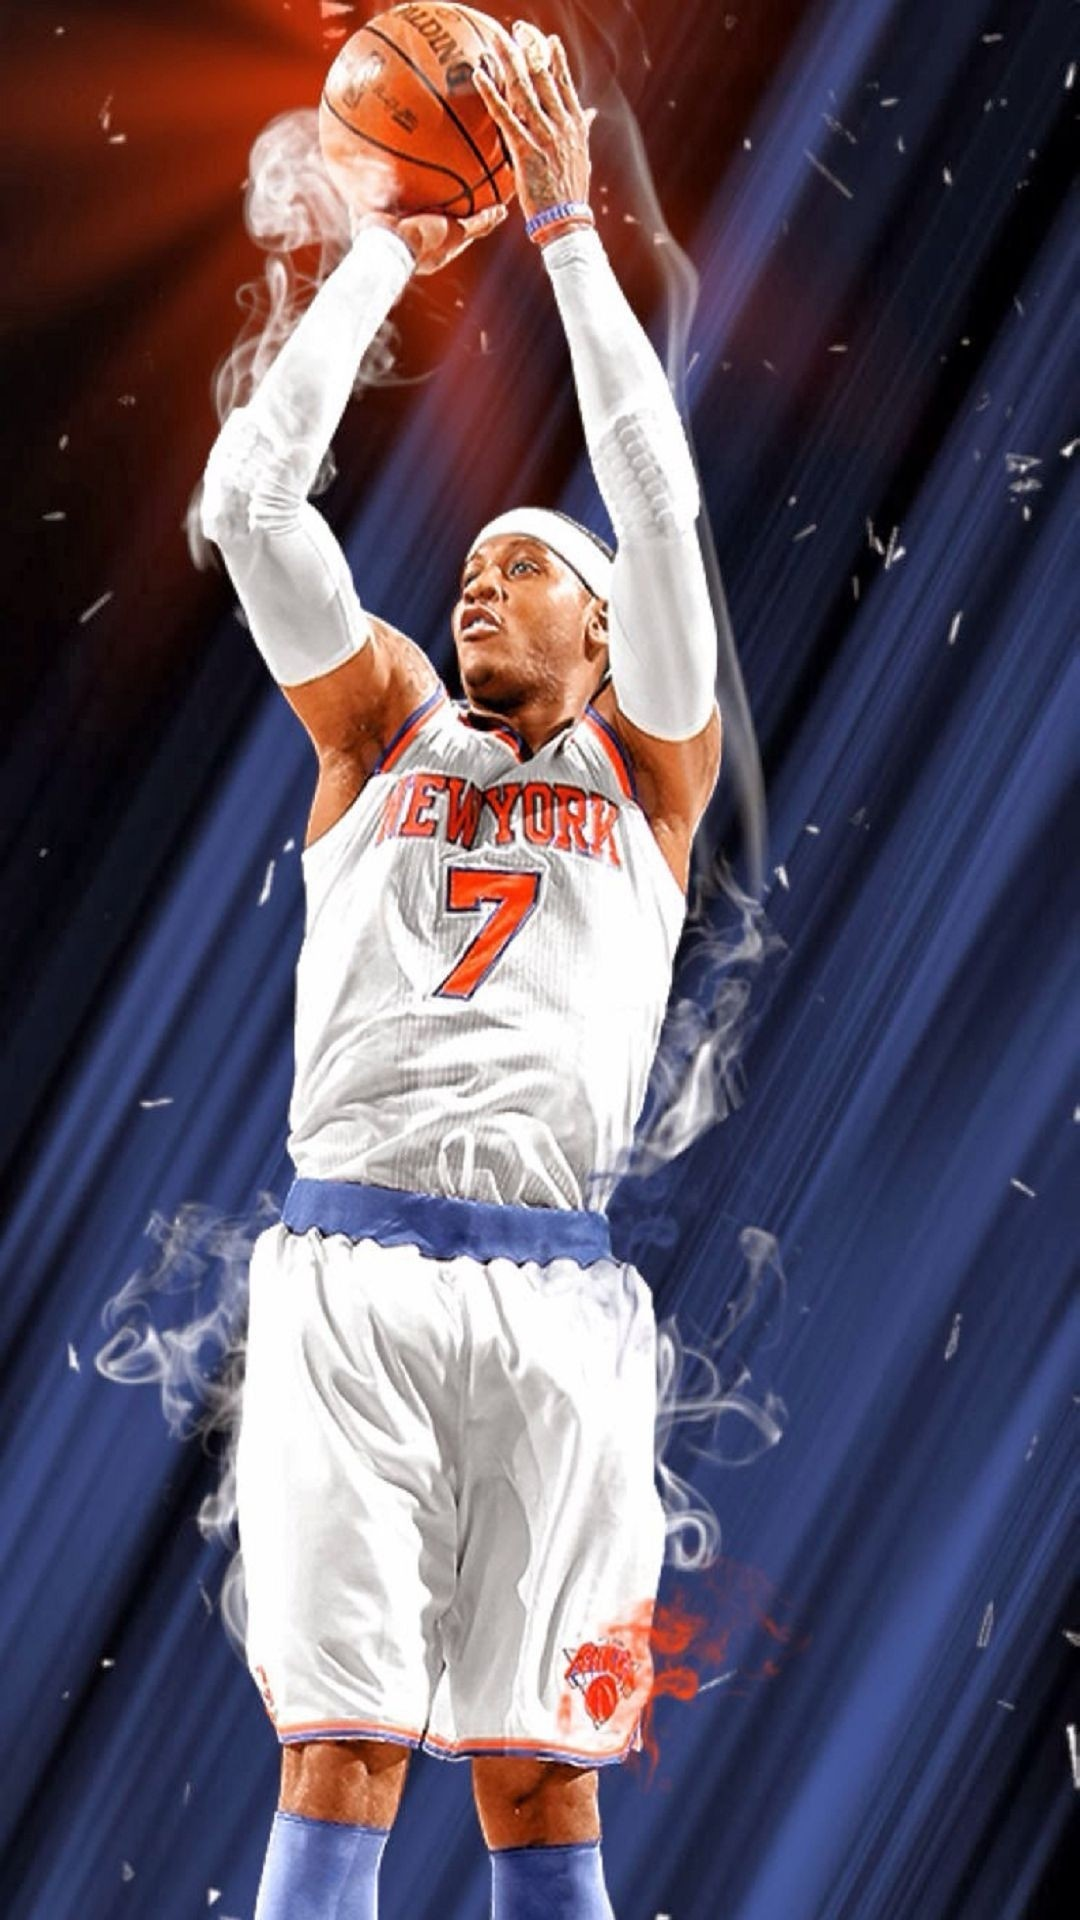 1080x1920 Title : carmelo anthony | daily android wallpapers | pinterest | nba, nba.  Dimension : 1080 x 1920. File Type : JPG/JPEG